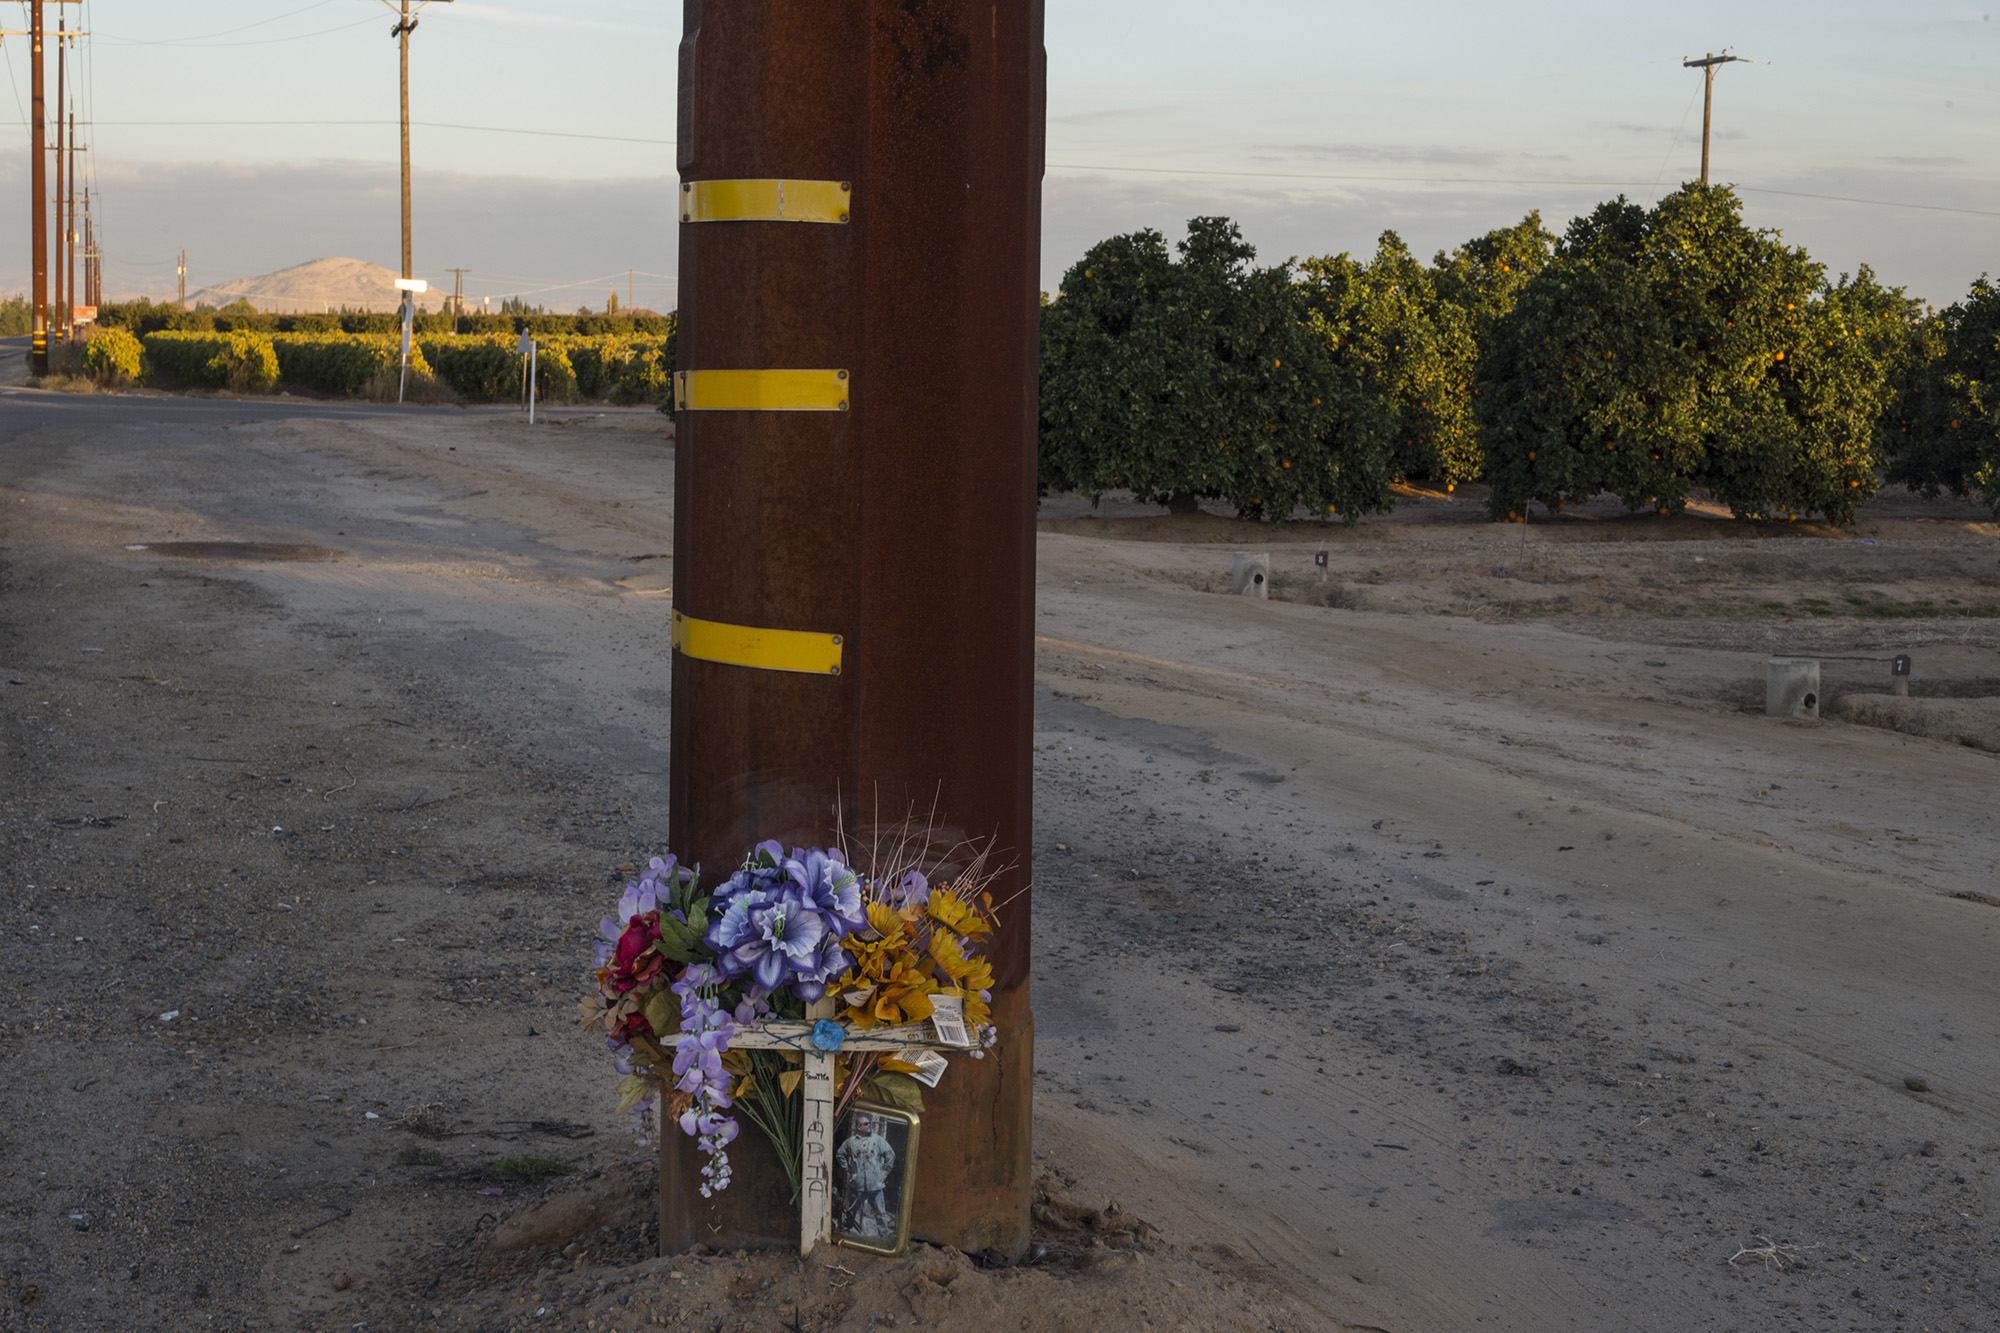 A memorial stands against a telephone pole at the edge of a highway spanning miles of agriculture in Fresno, Calif., on Friday, November 10, 2017. (Brittany Greeson/GroundTruth)